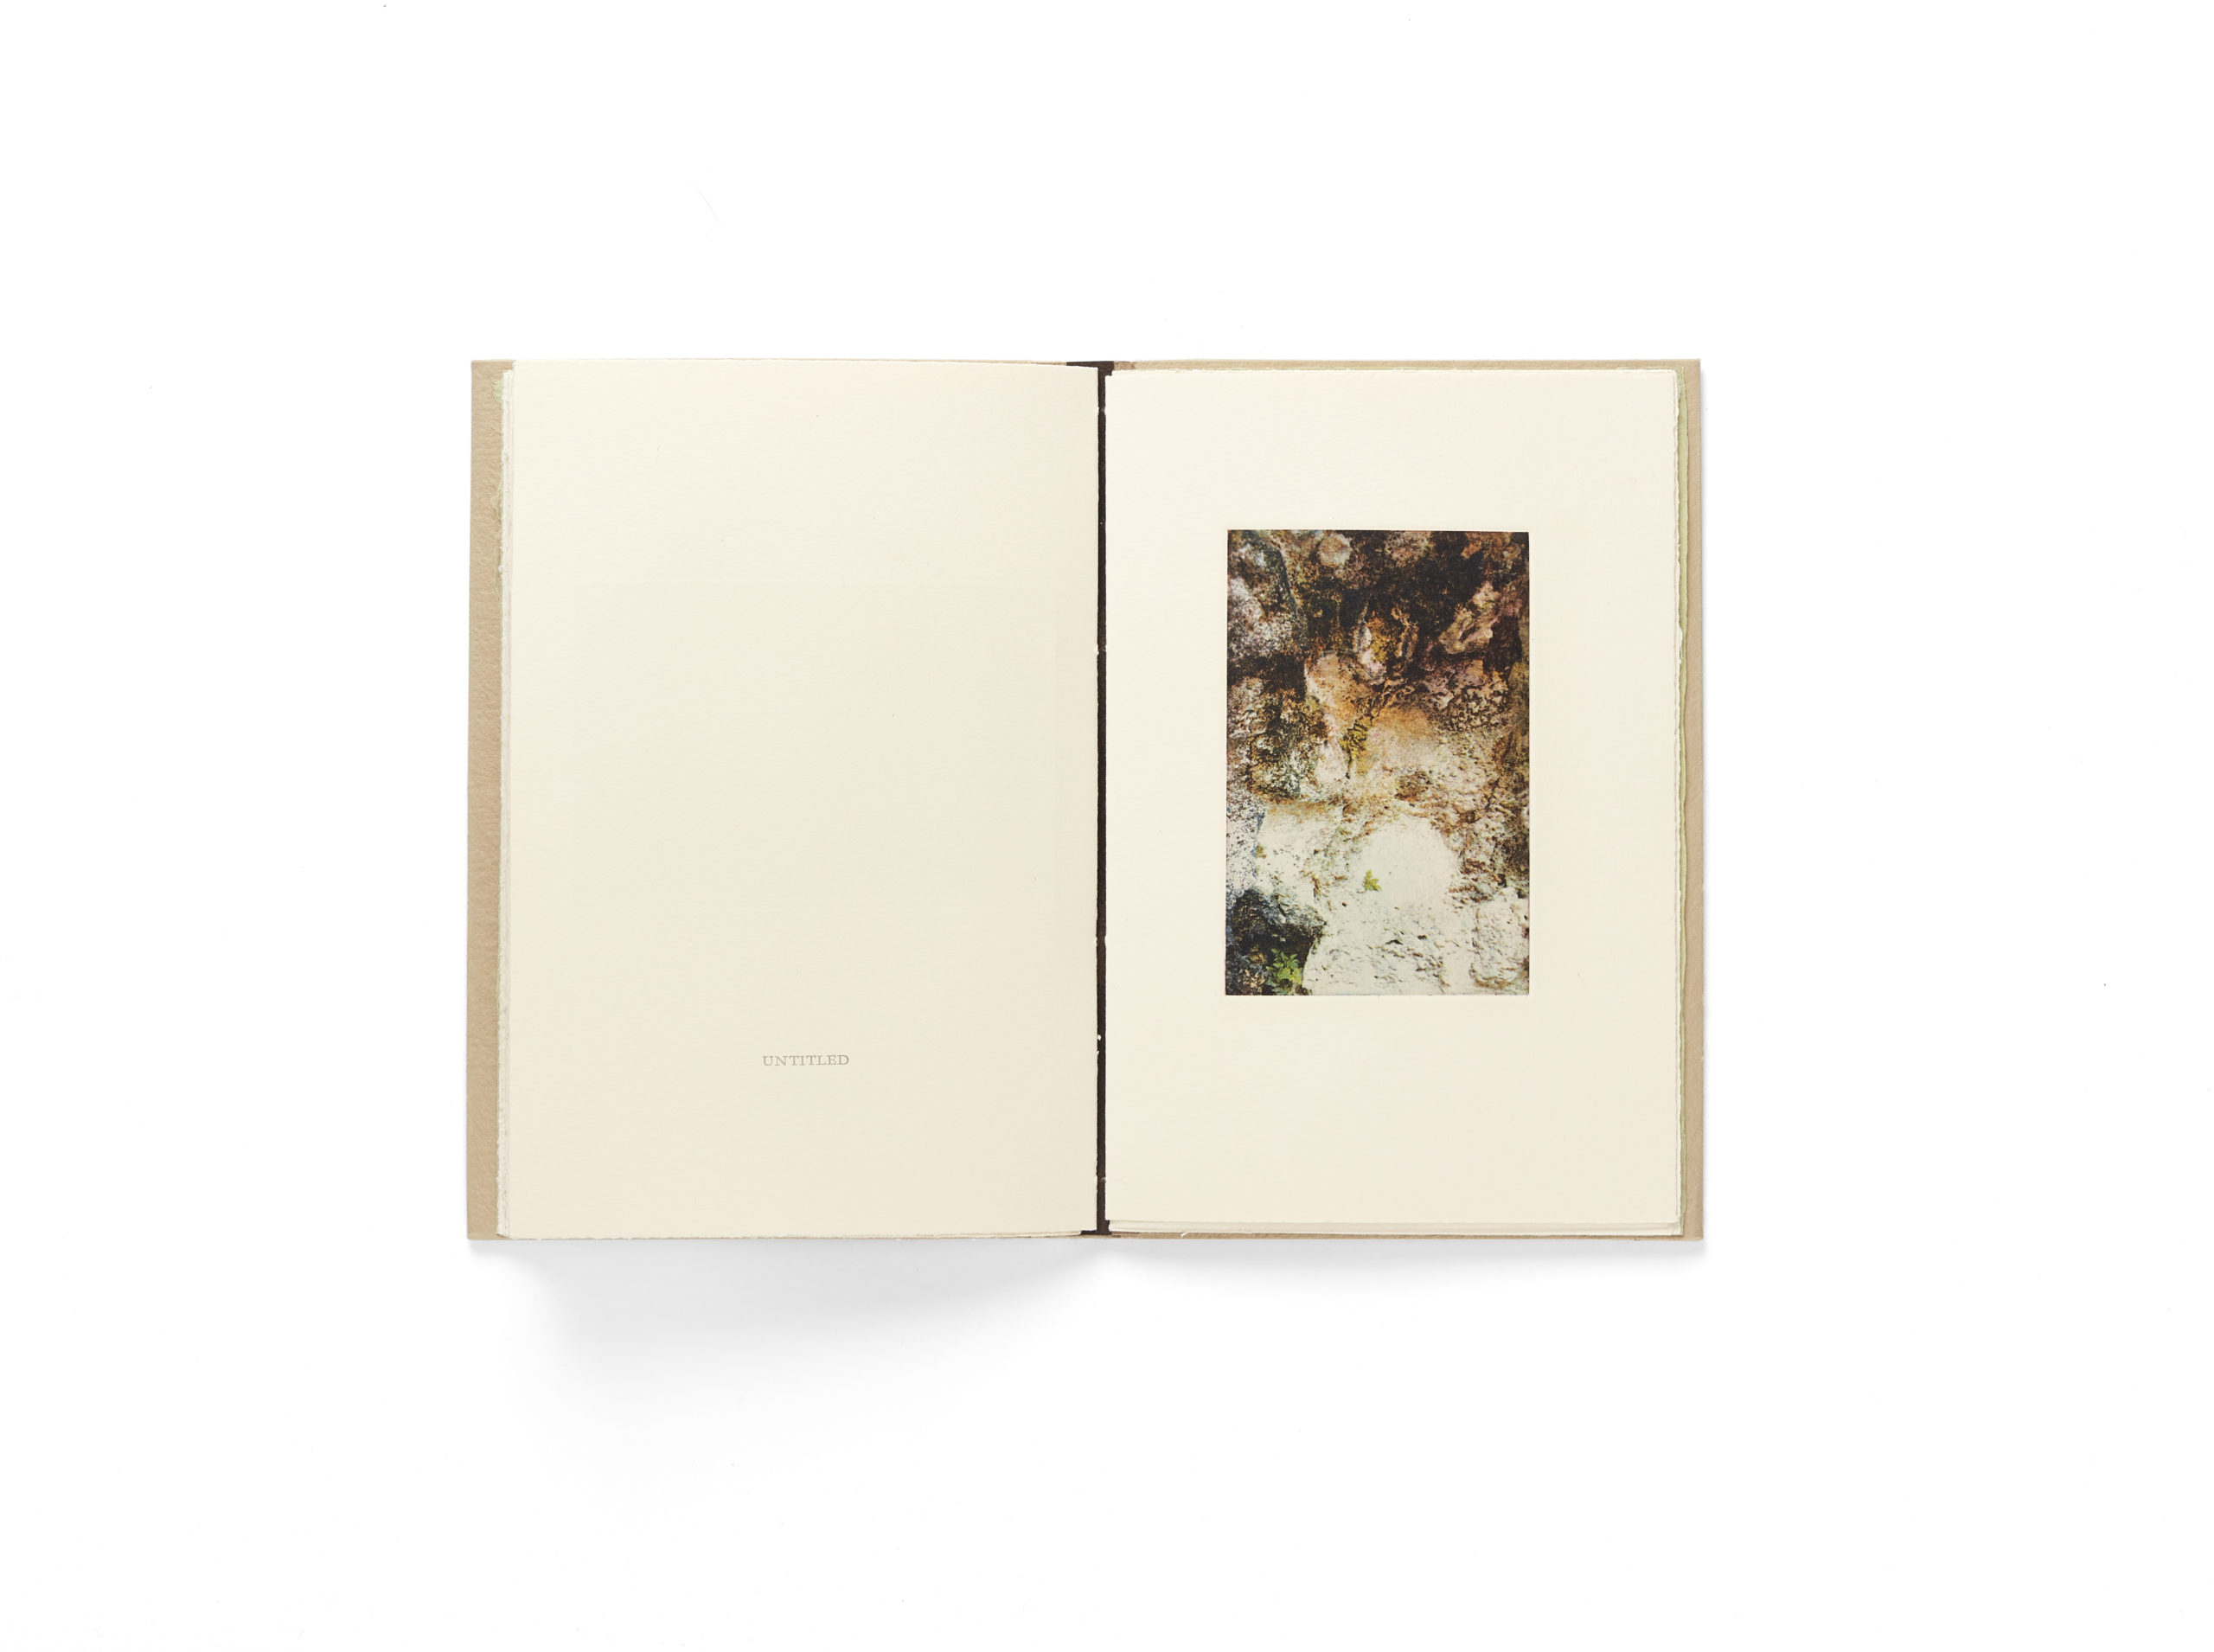 book spread with photo of body shape in ground